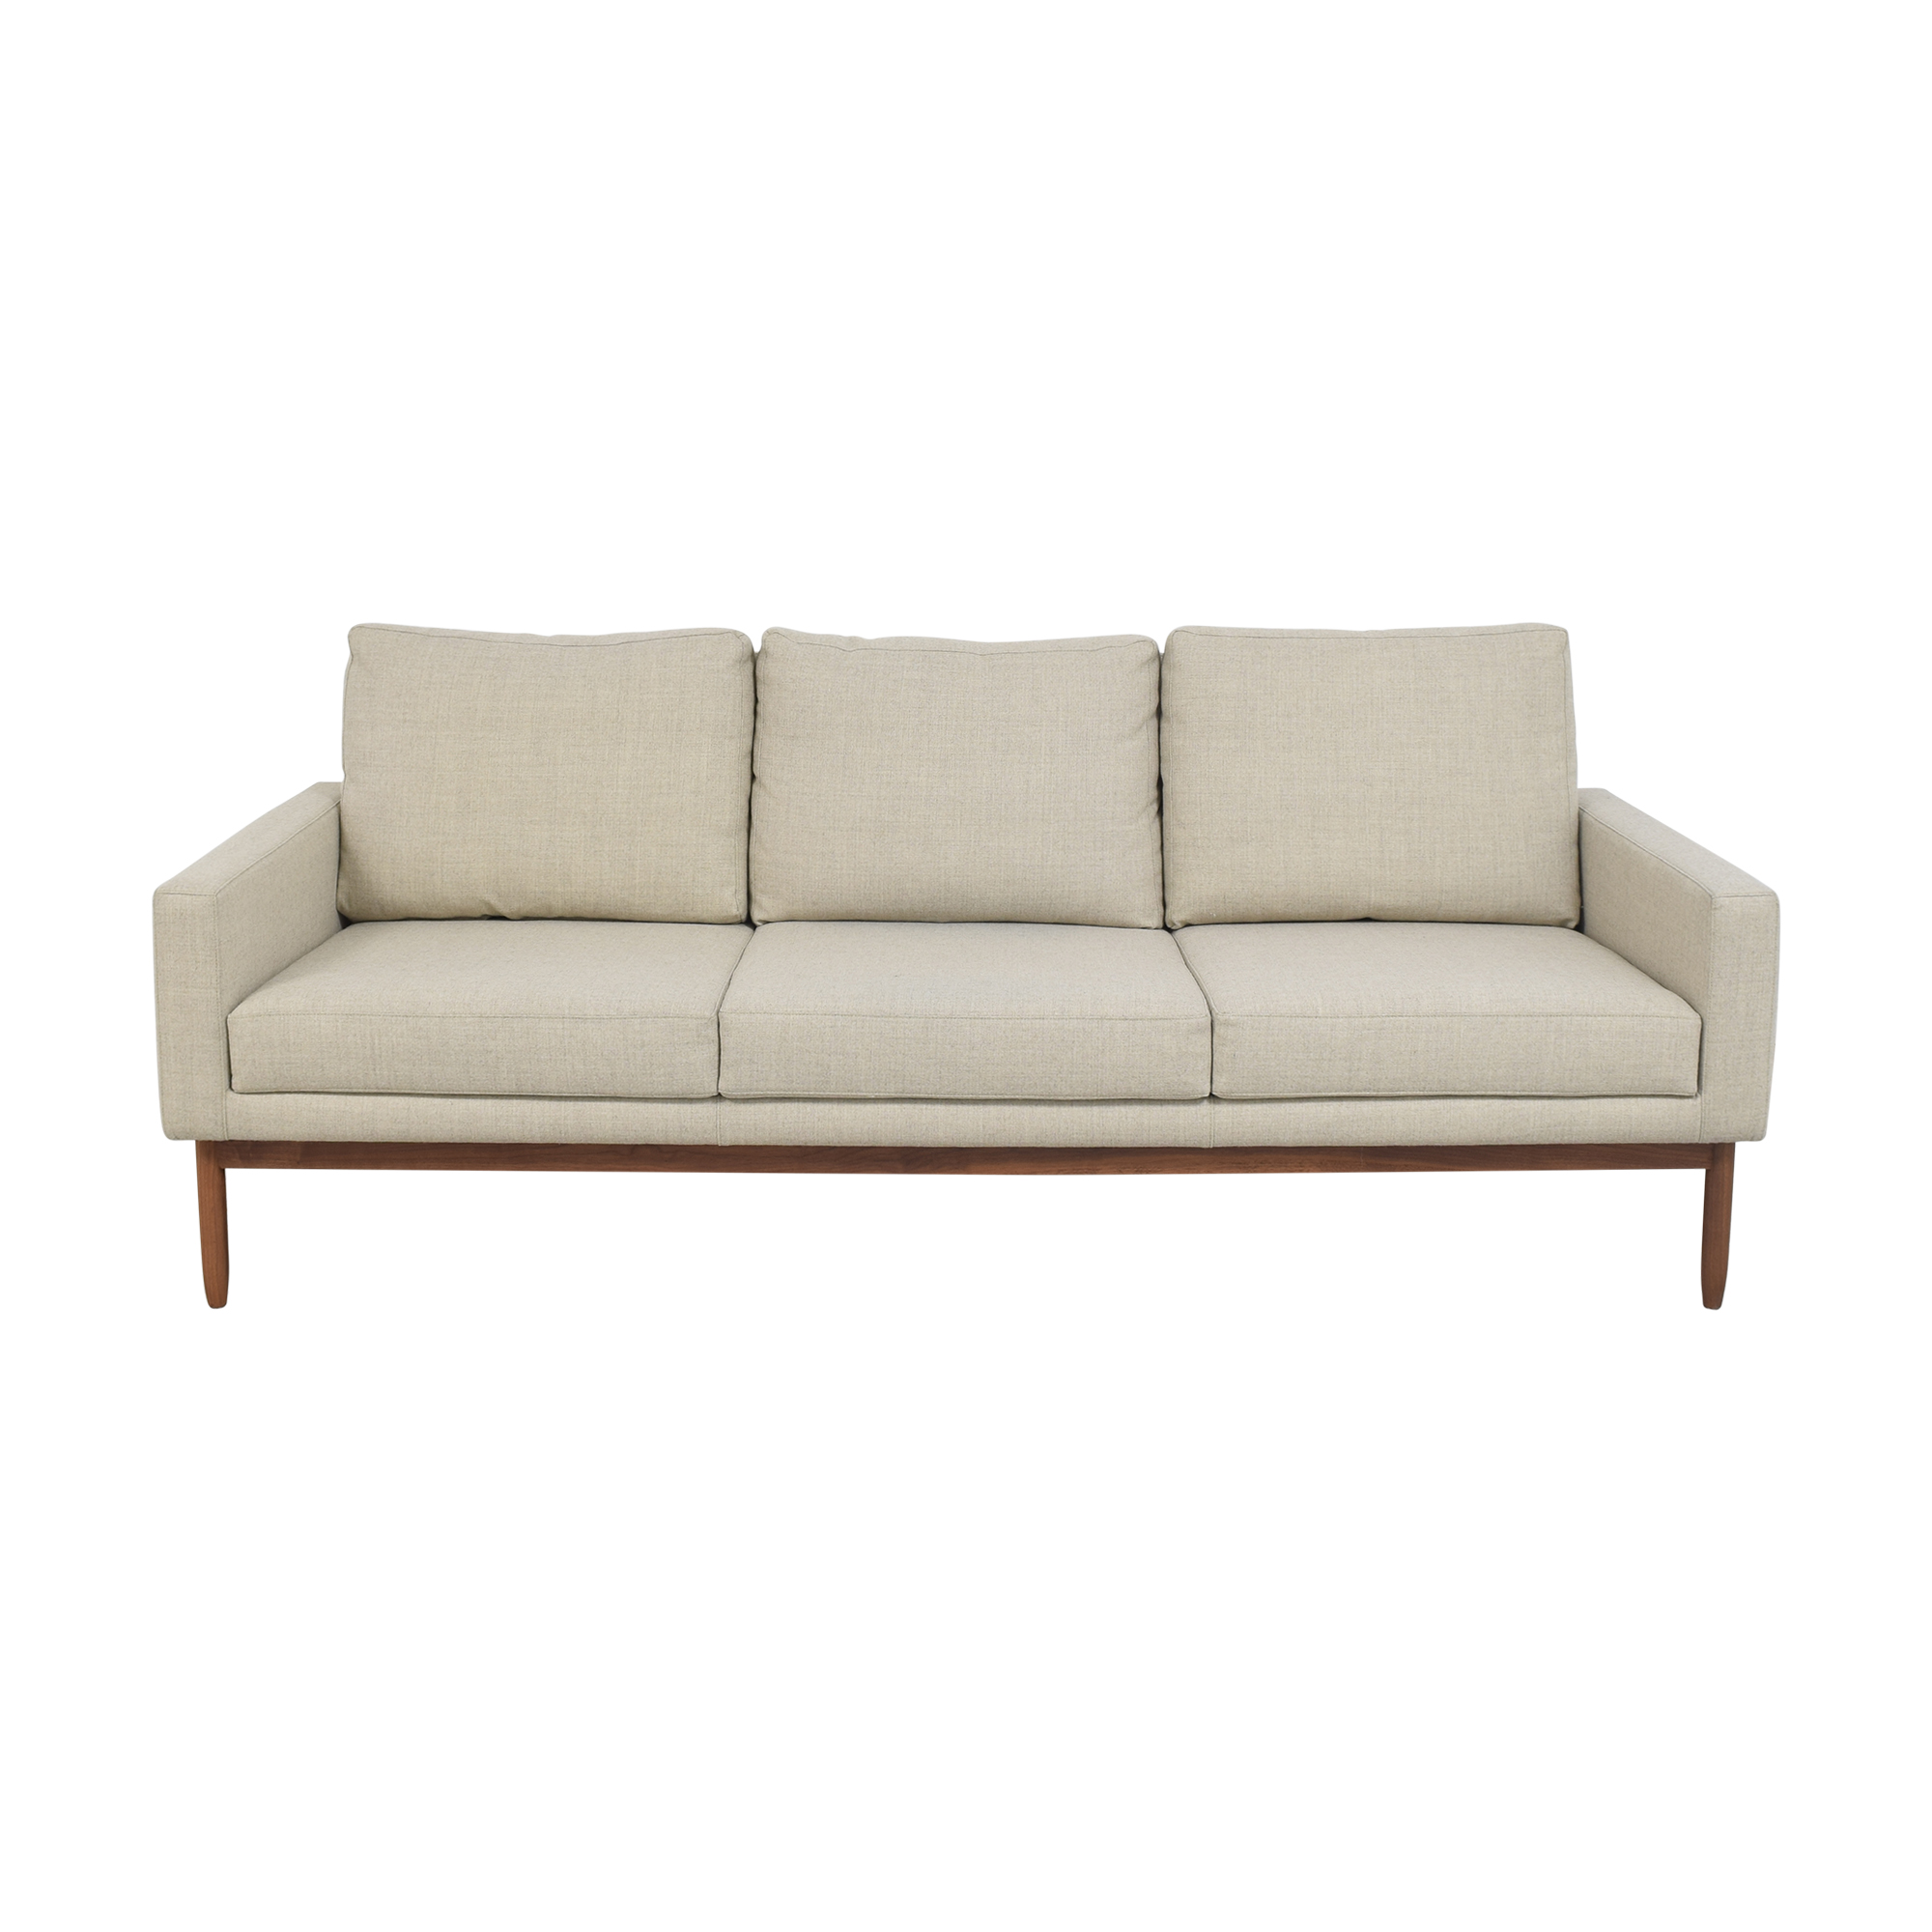 Design Within Reach Design Within Reach Raleigh Sofa second hand